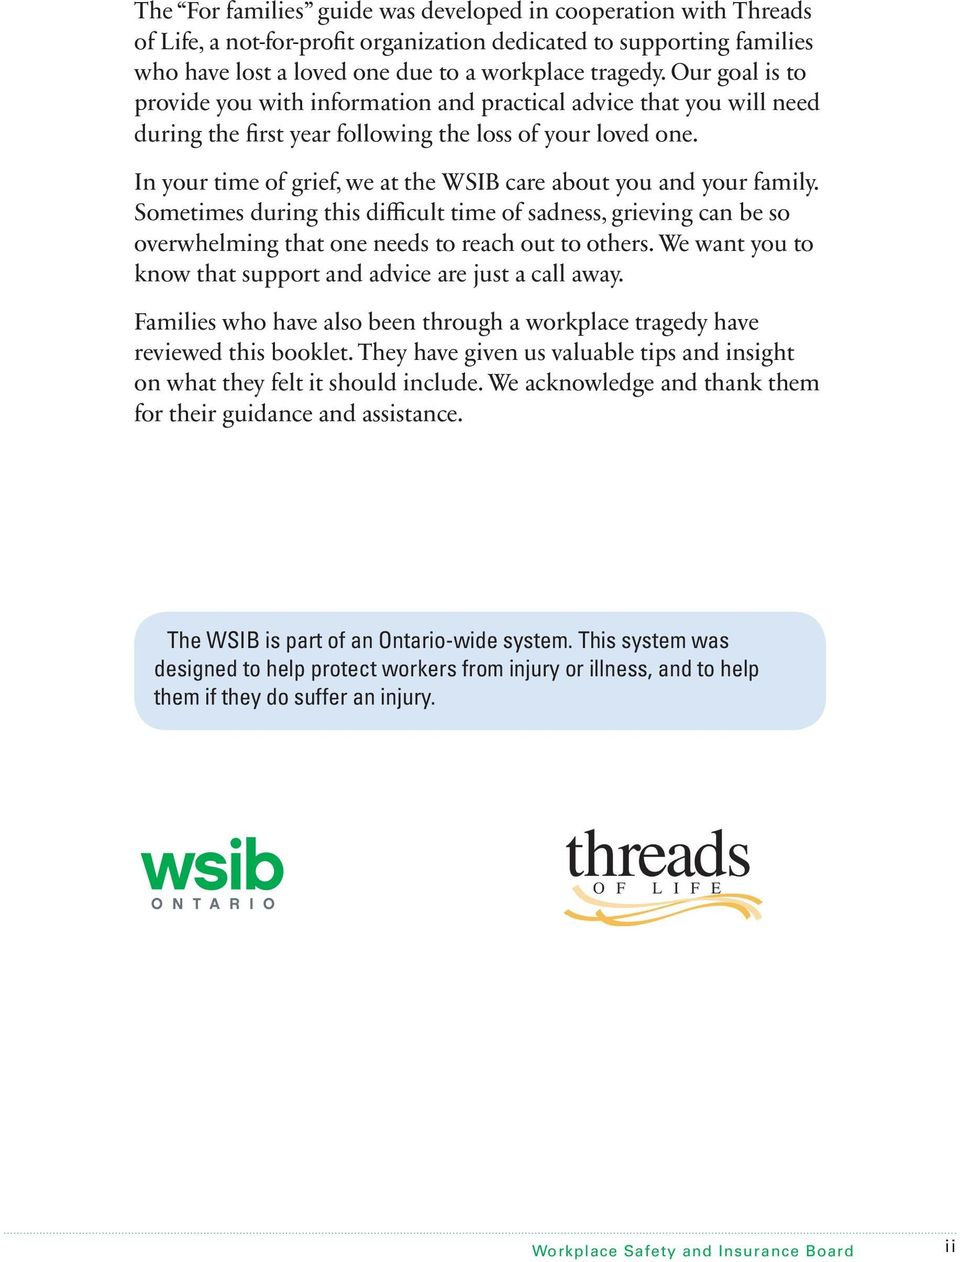 In your time of grief, we at the WSIB care about you and your family. Sometimes during this difficult time of sadness, grieving can be so overwhelming that one needs to reach out to others.